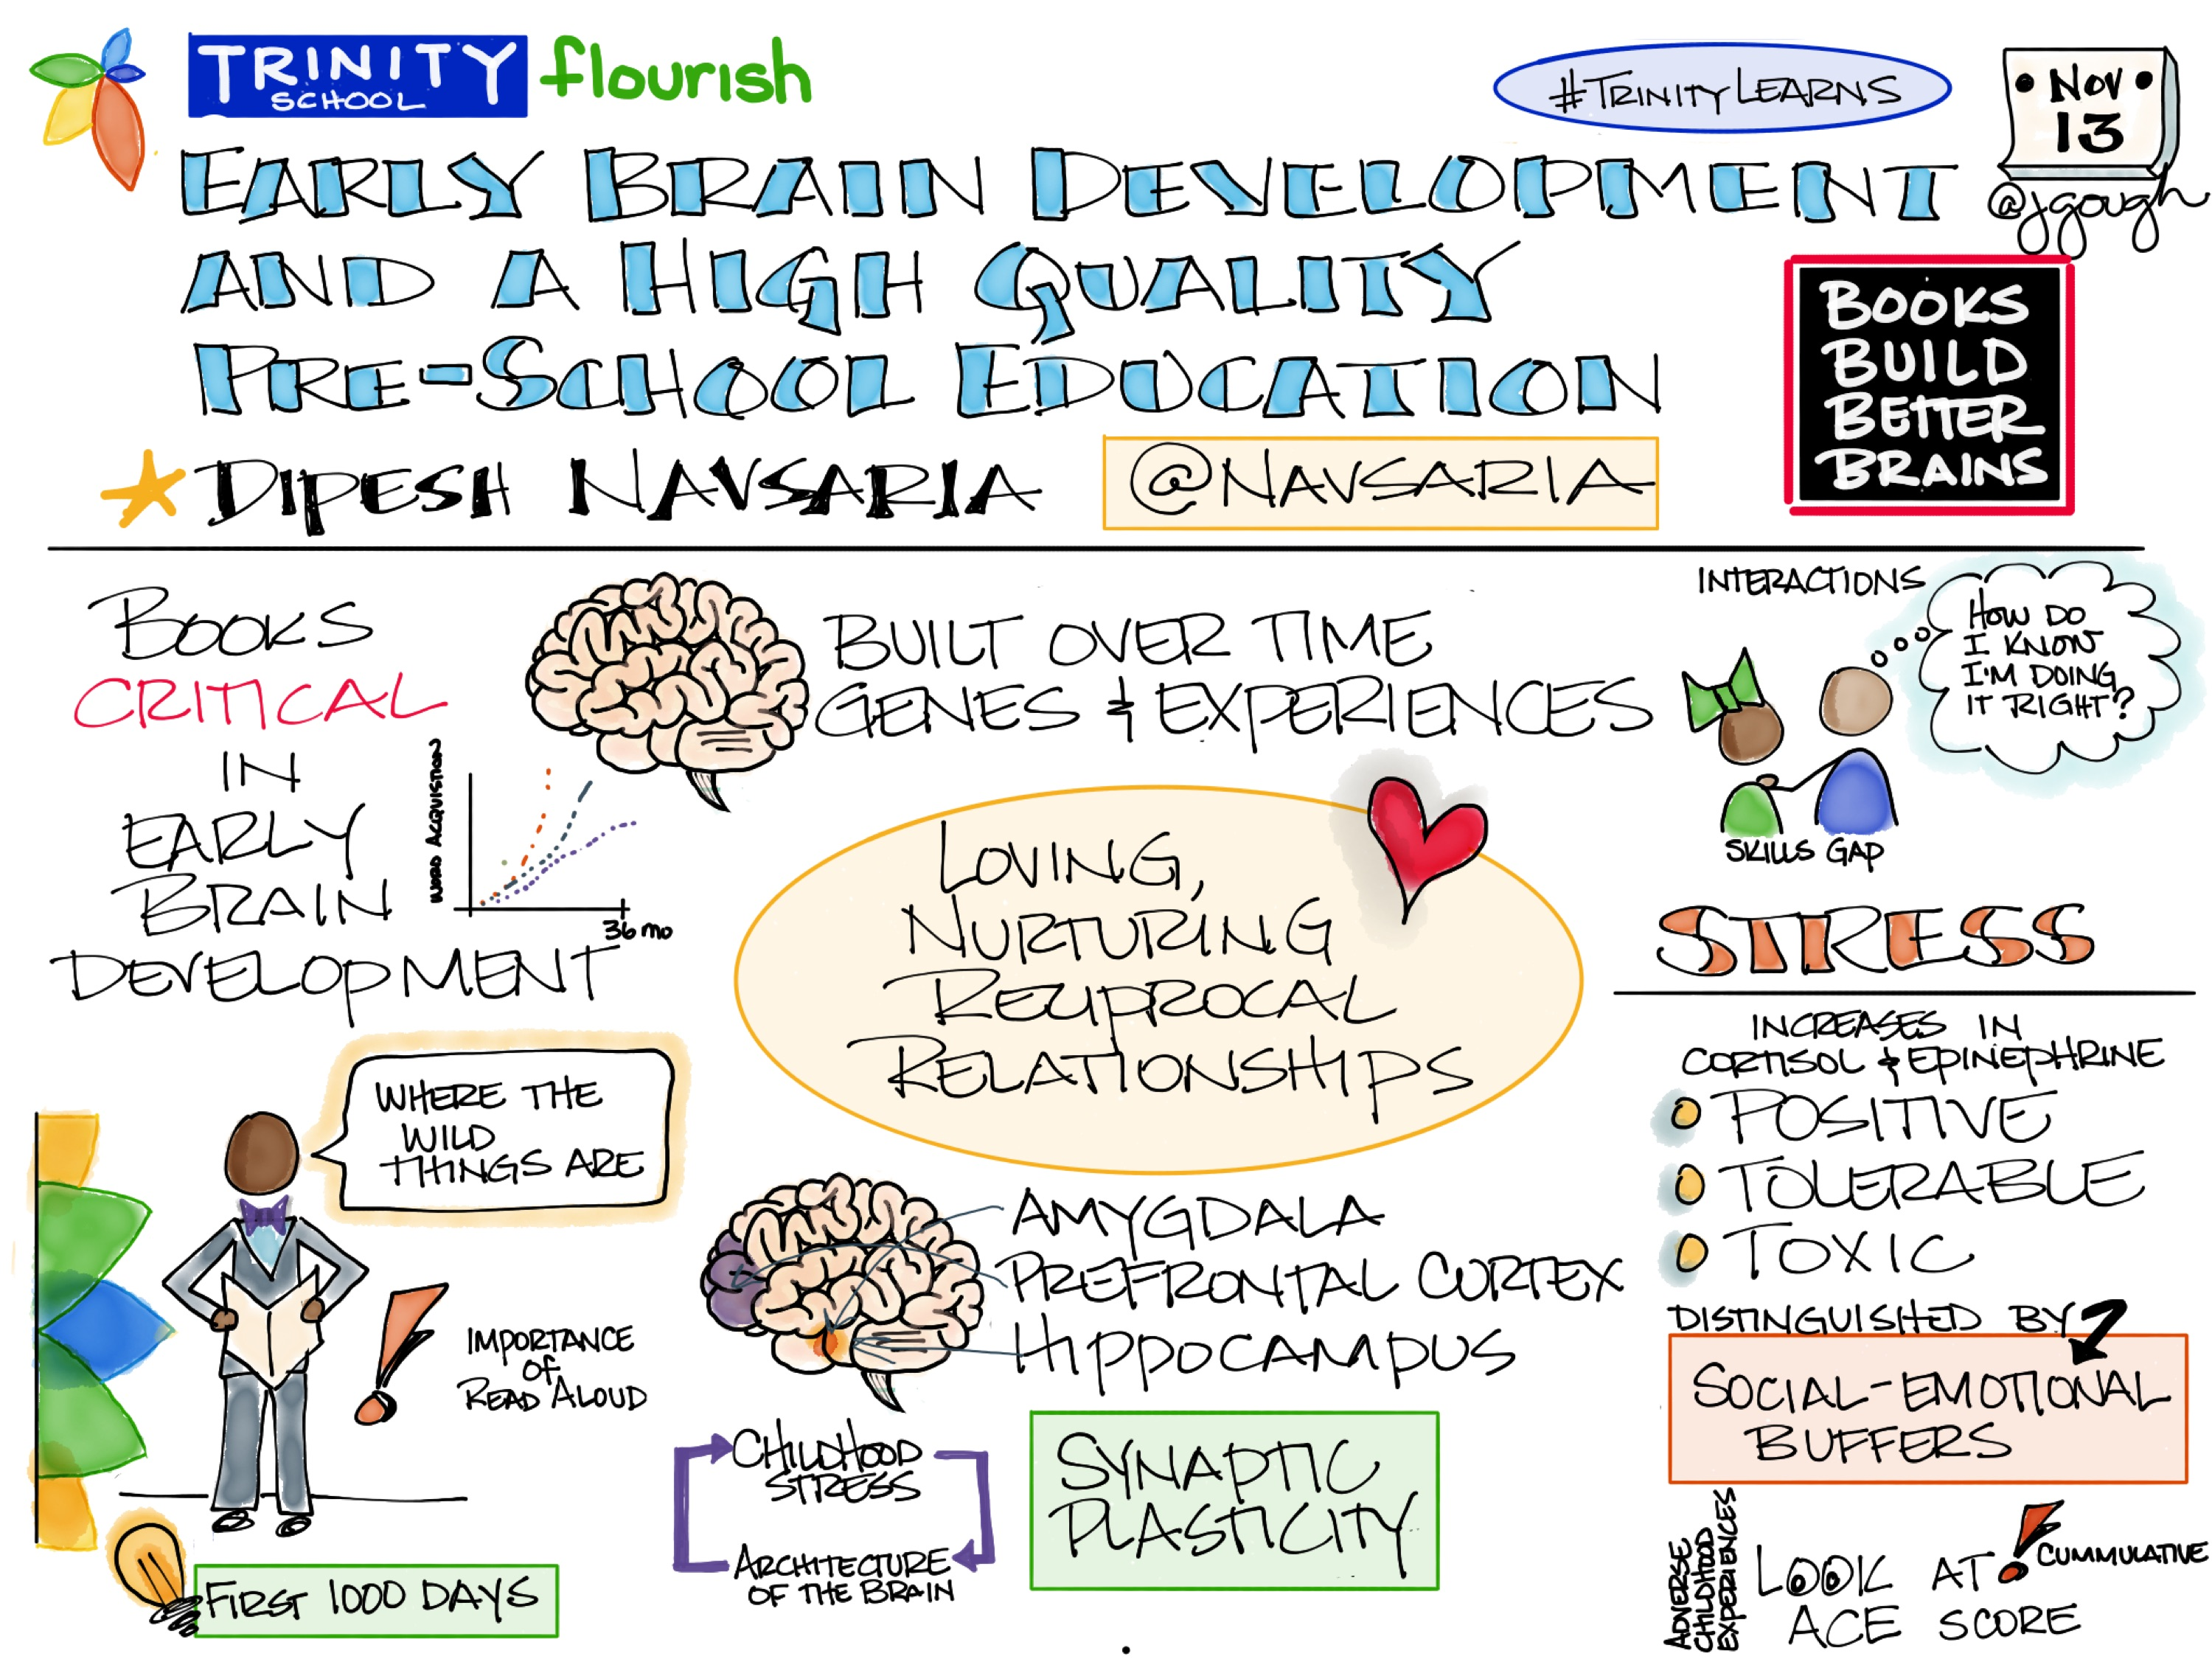 Sharing my #Sketchnote from Early Brain Development – Importance of Reading from Dipesh @Navsaria #TrinityLearns gamechanger is loving, nurturing, reciprocal relationships